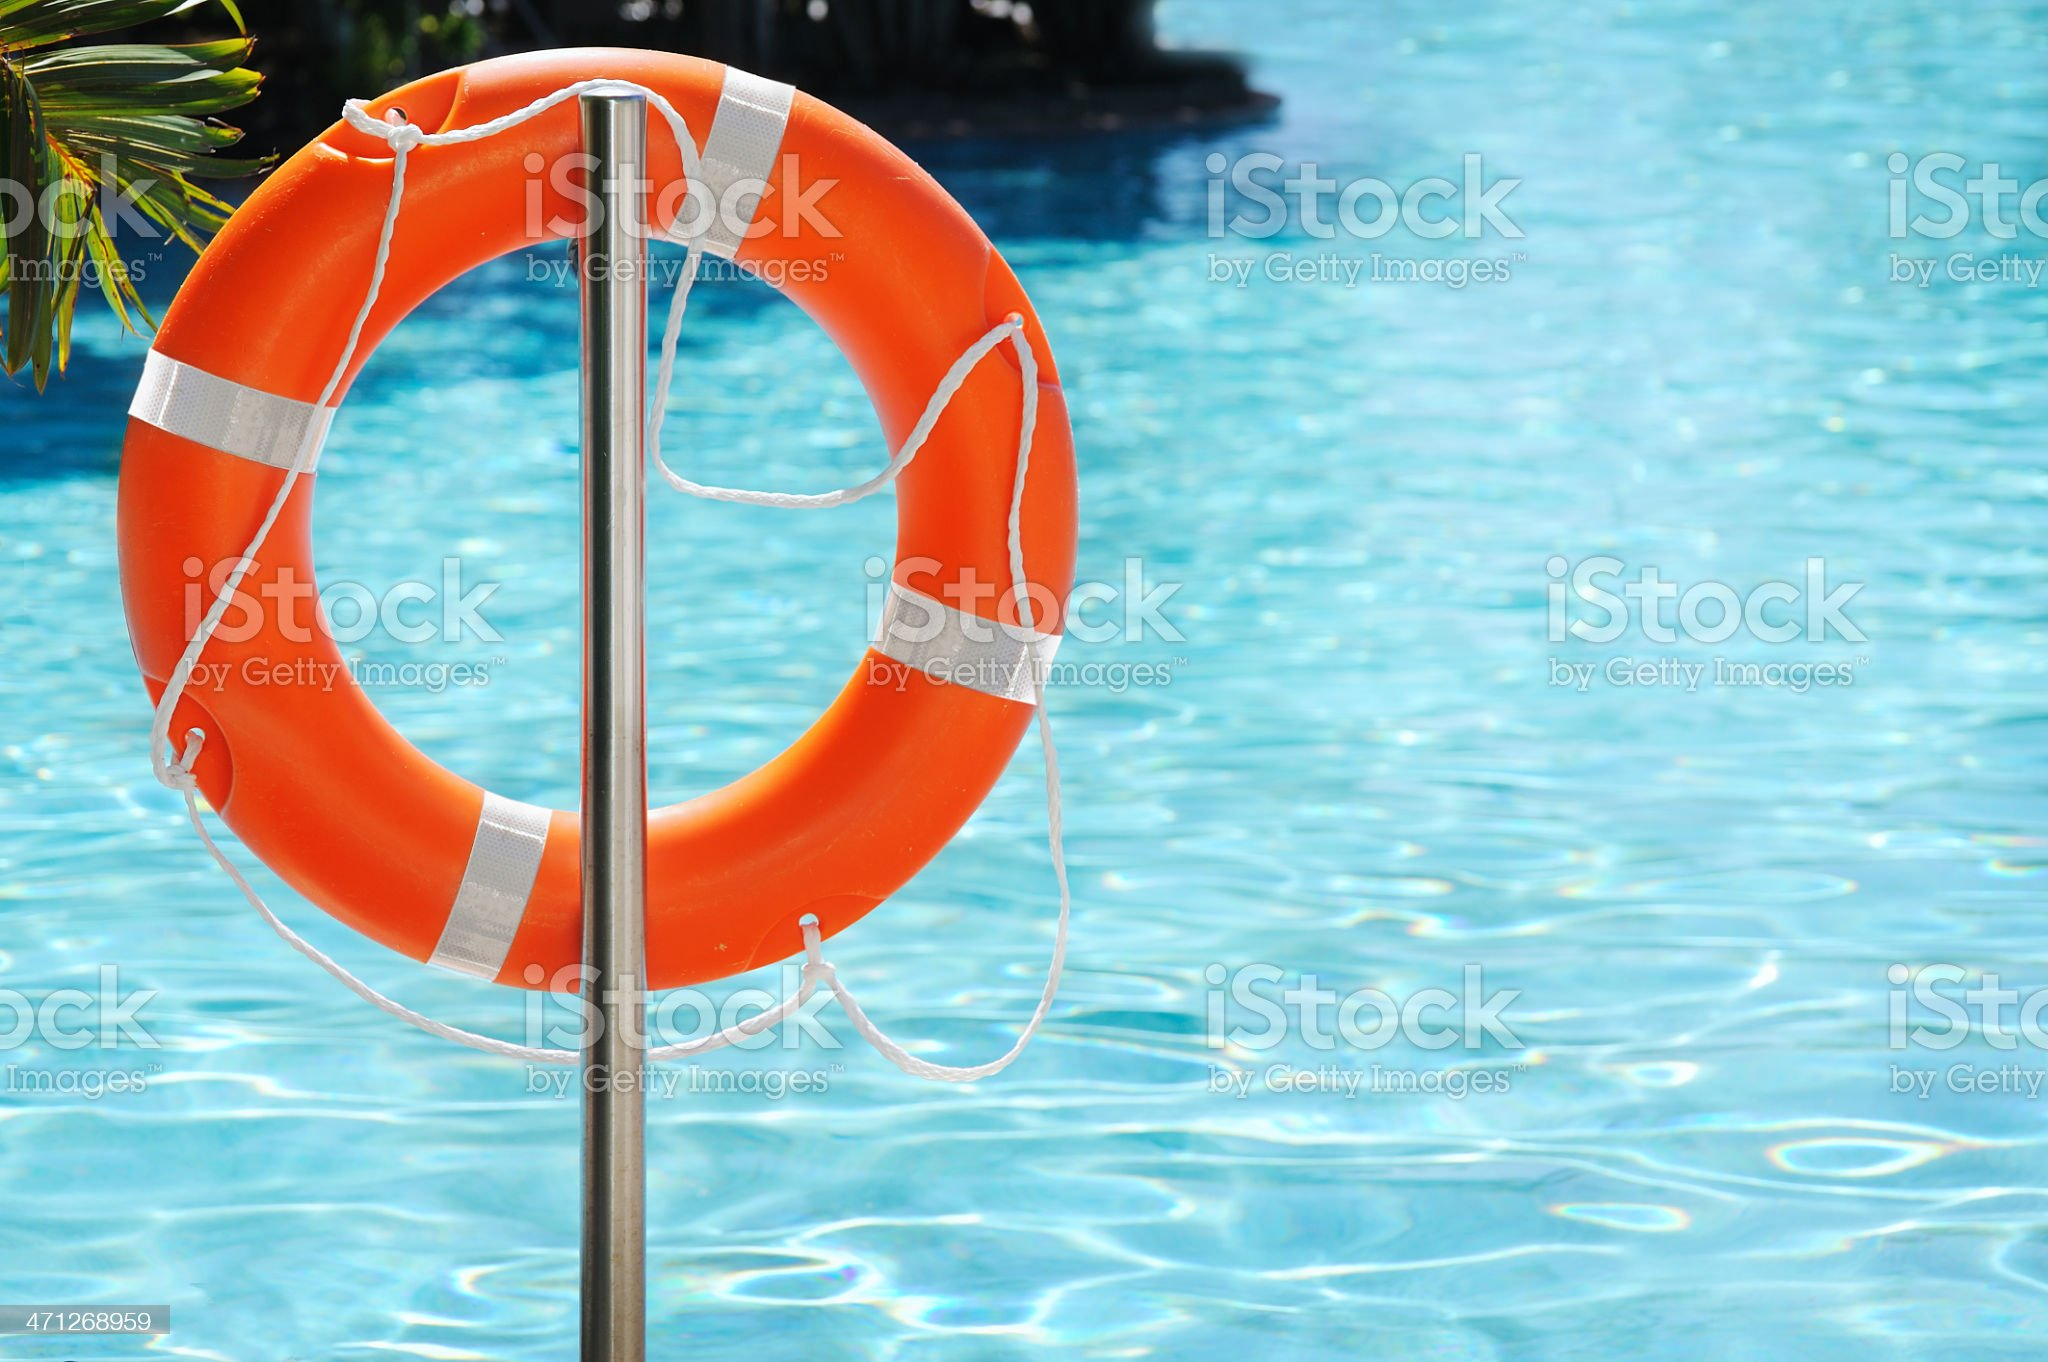 Lifebuoy by Pool royalty-free stock photo